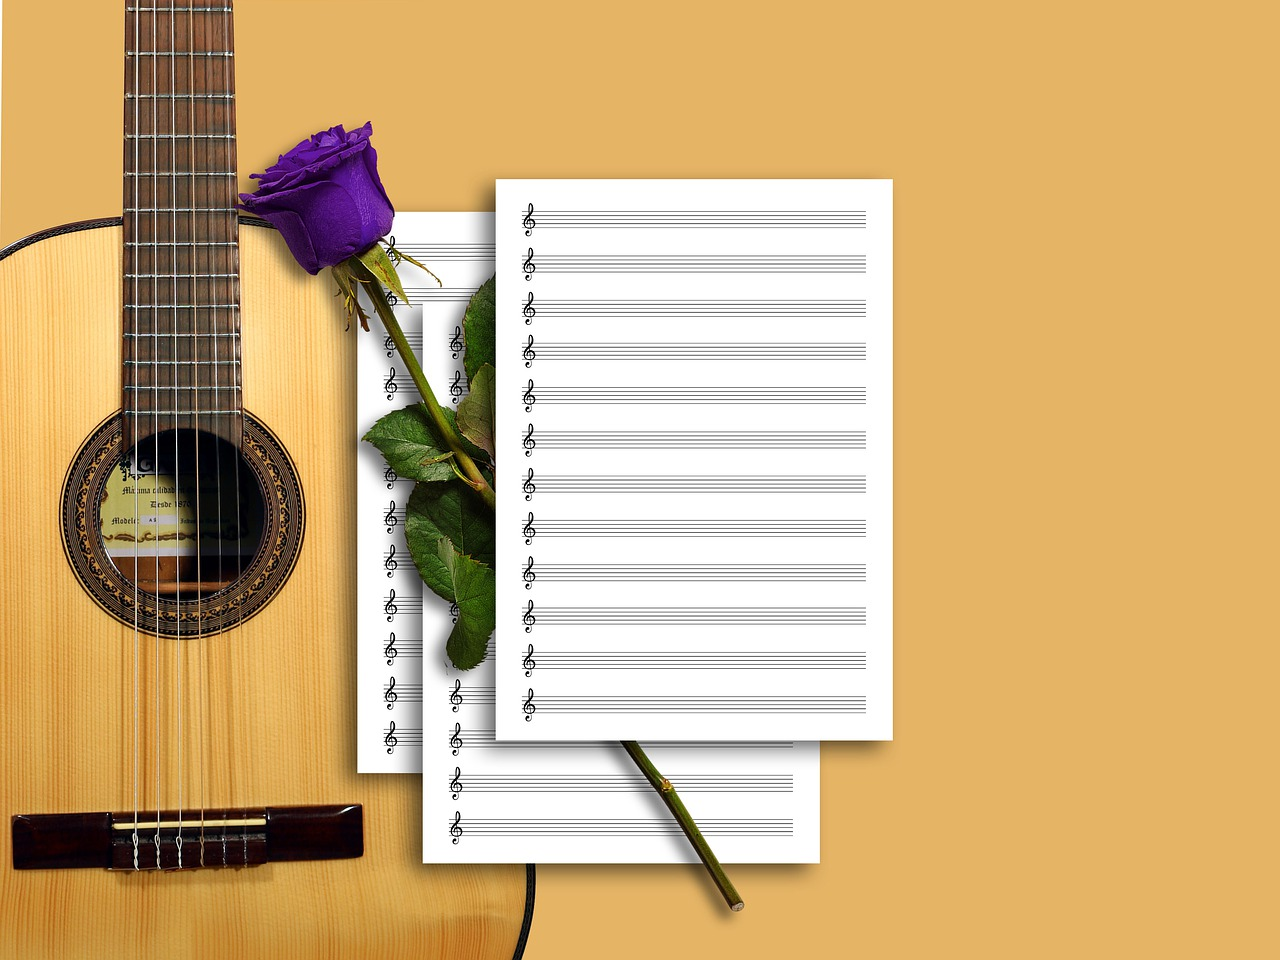 guitar, sheet music, music